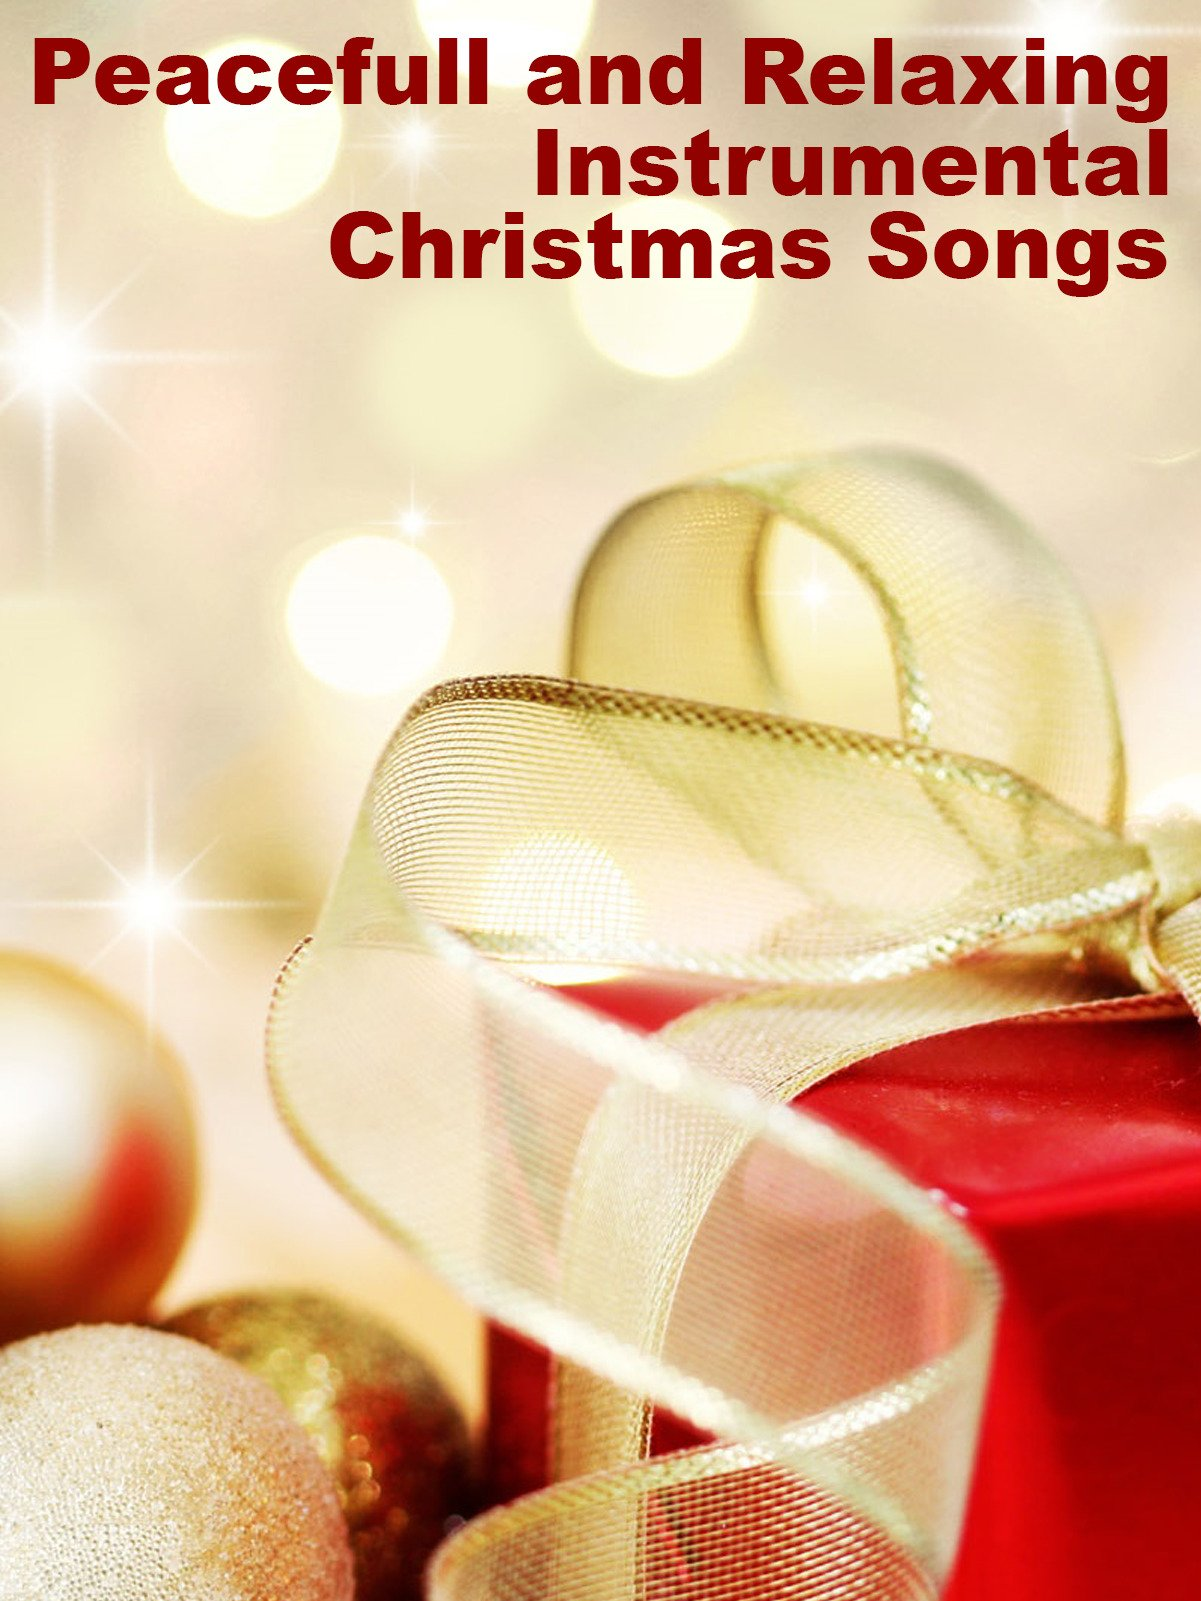 Peacefull and Relaxing Instrumental Christmas Songs